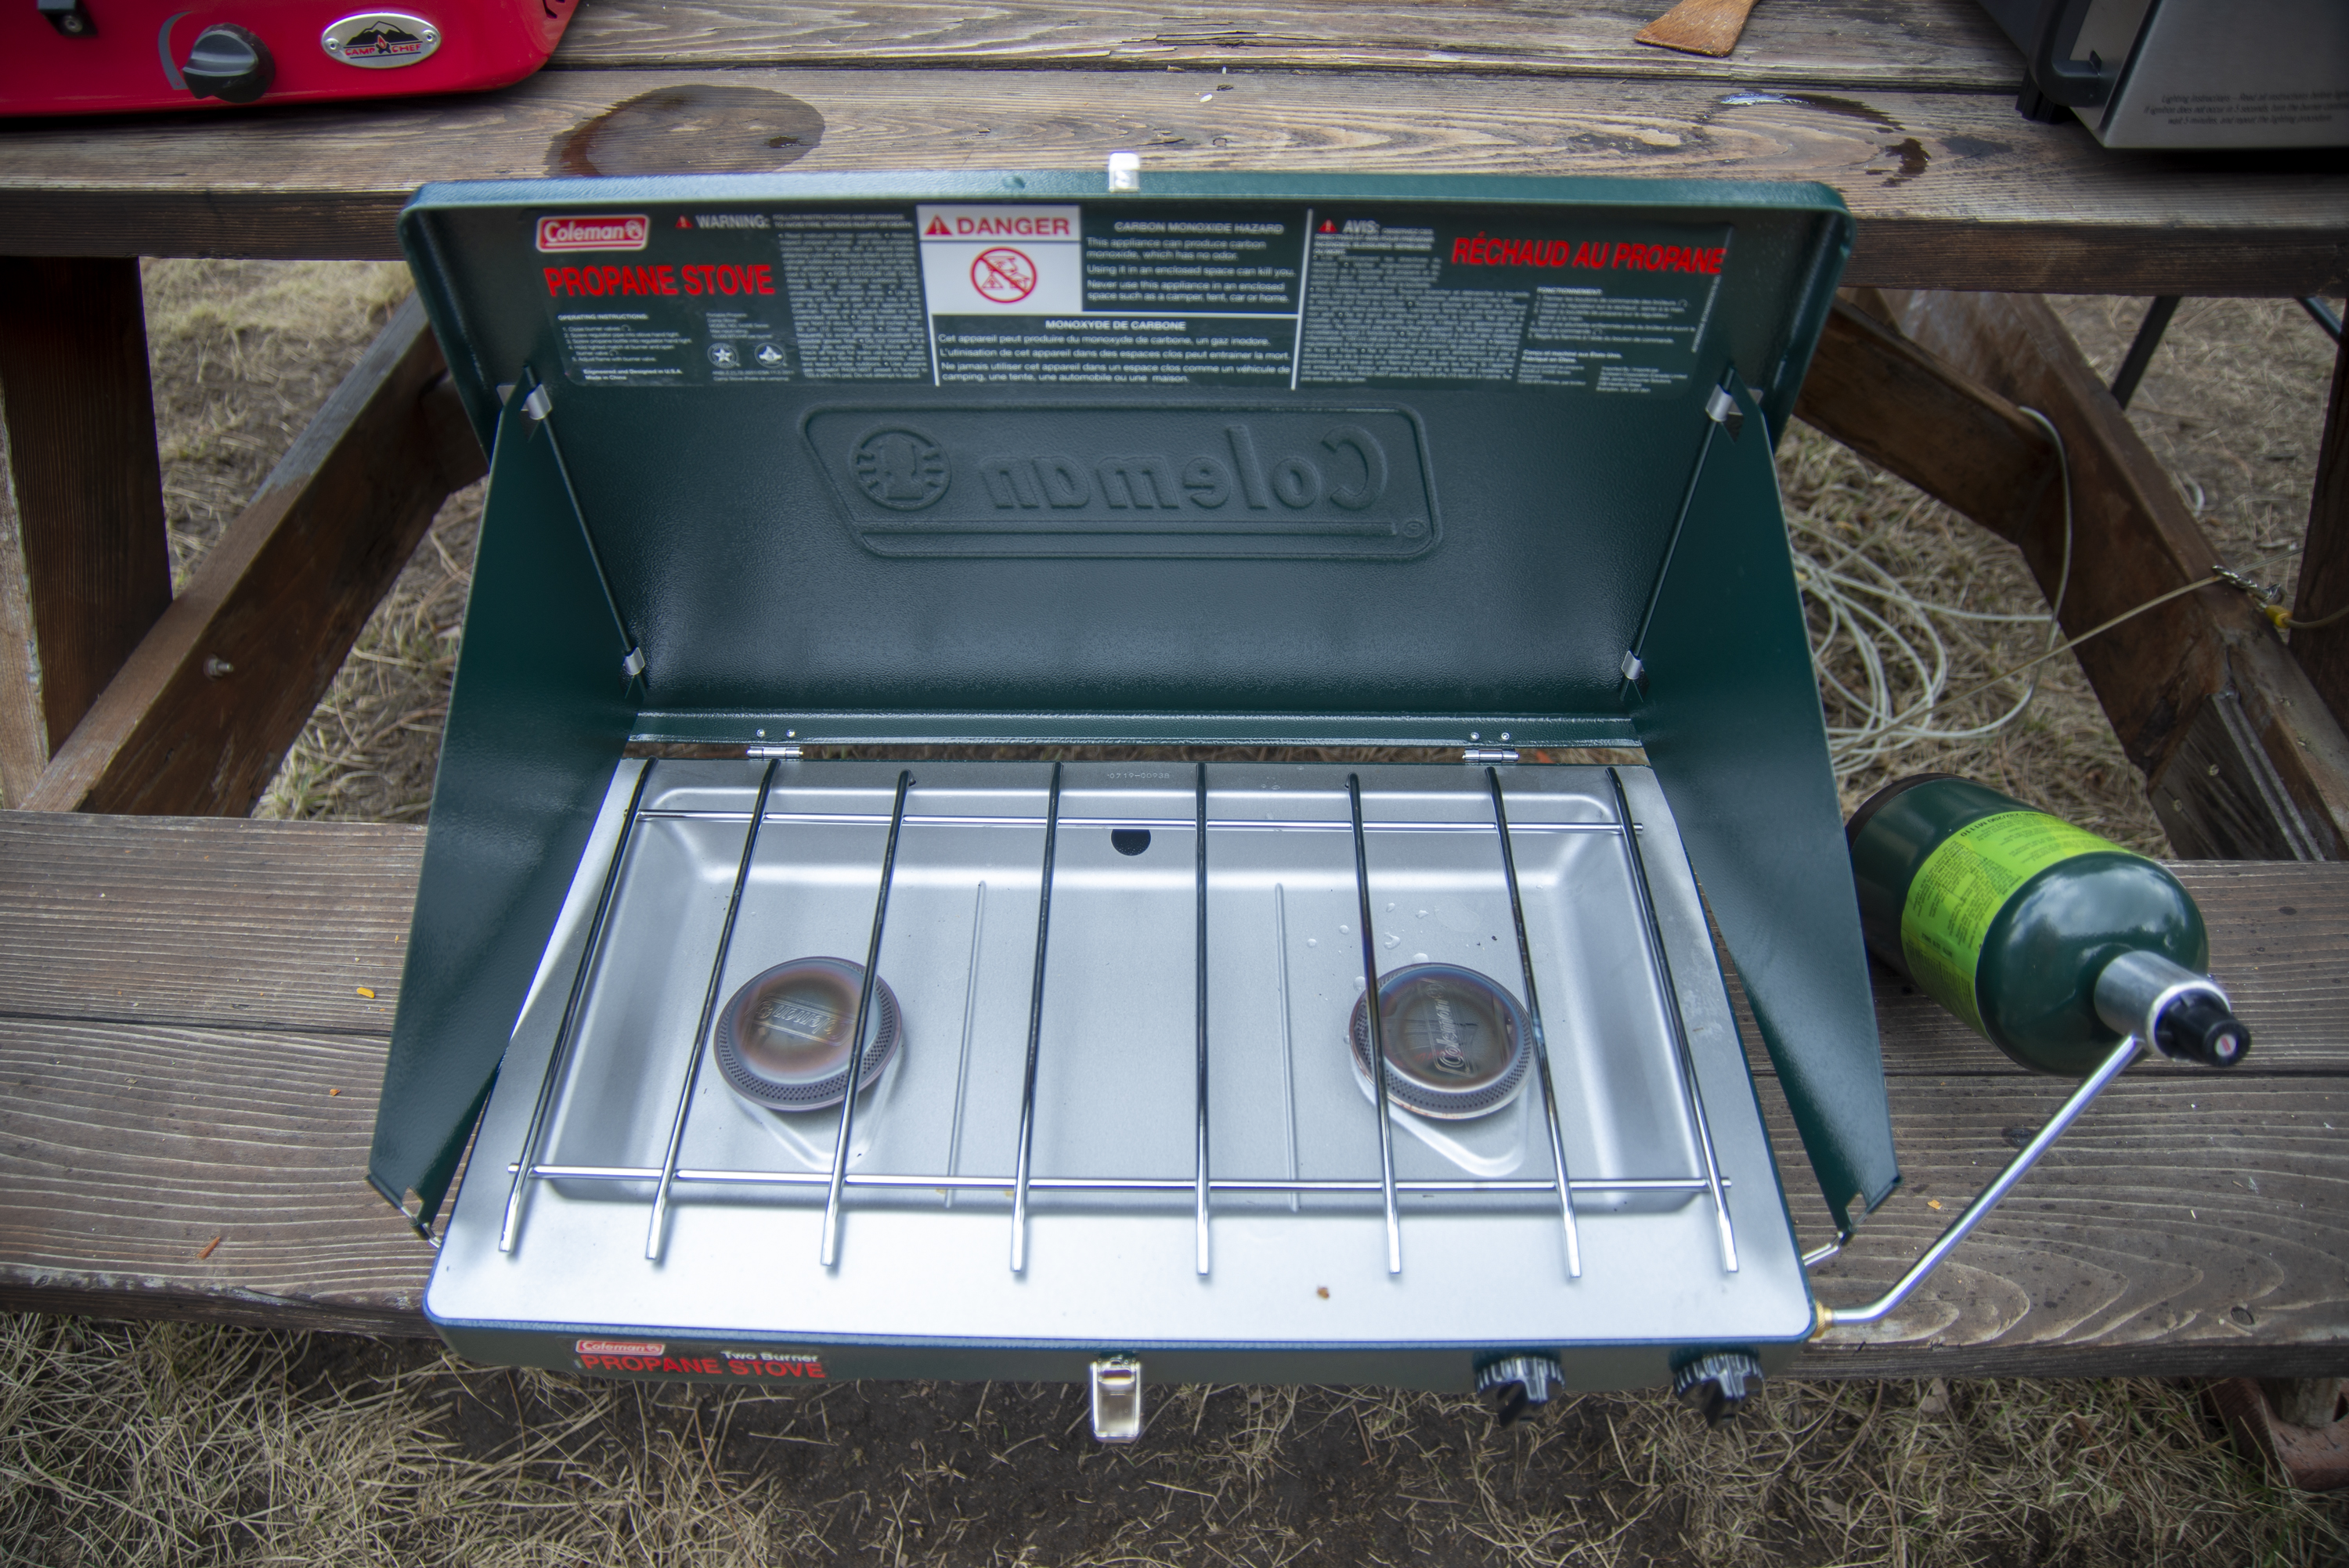 Best camping stoves: Coleman classic stove review